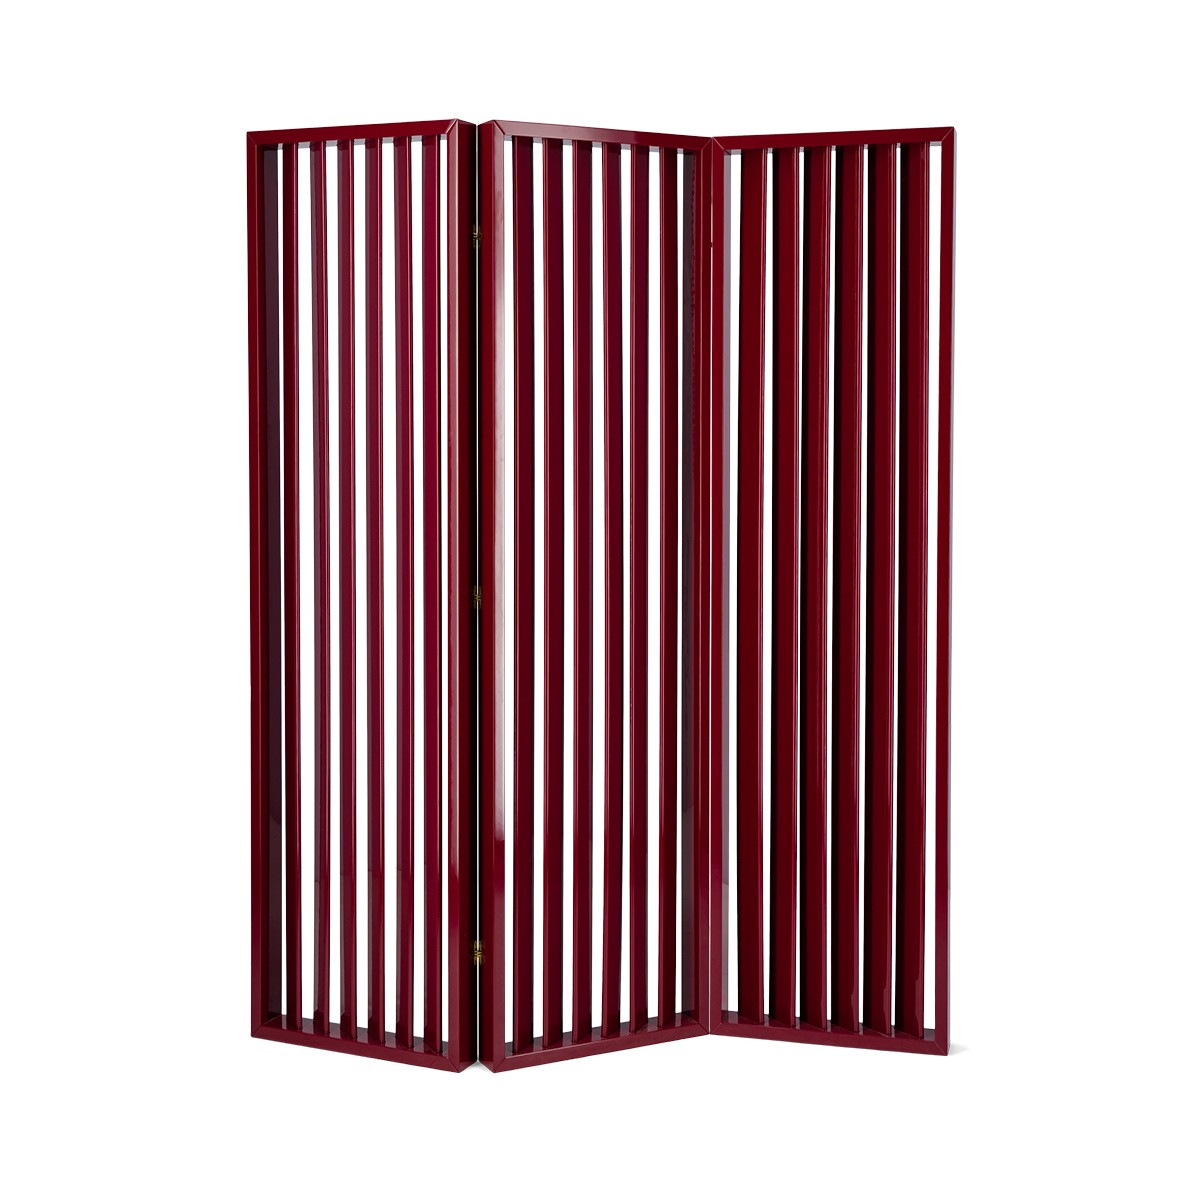 Occhio Burgundy Lacquered Room Divider